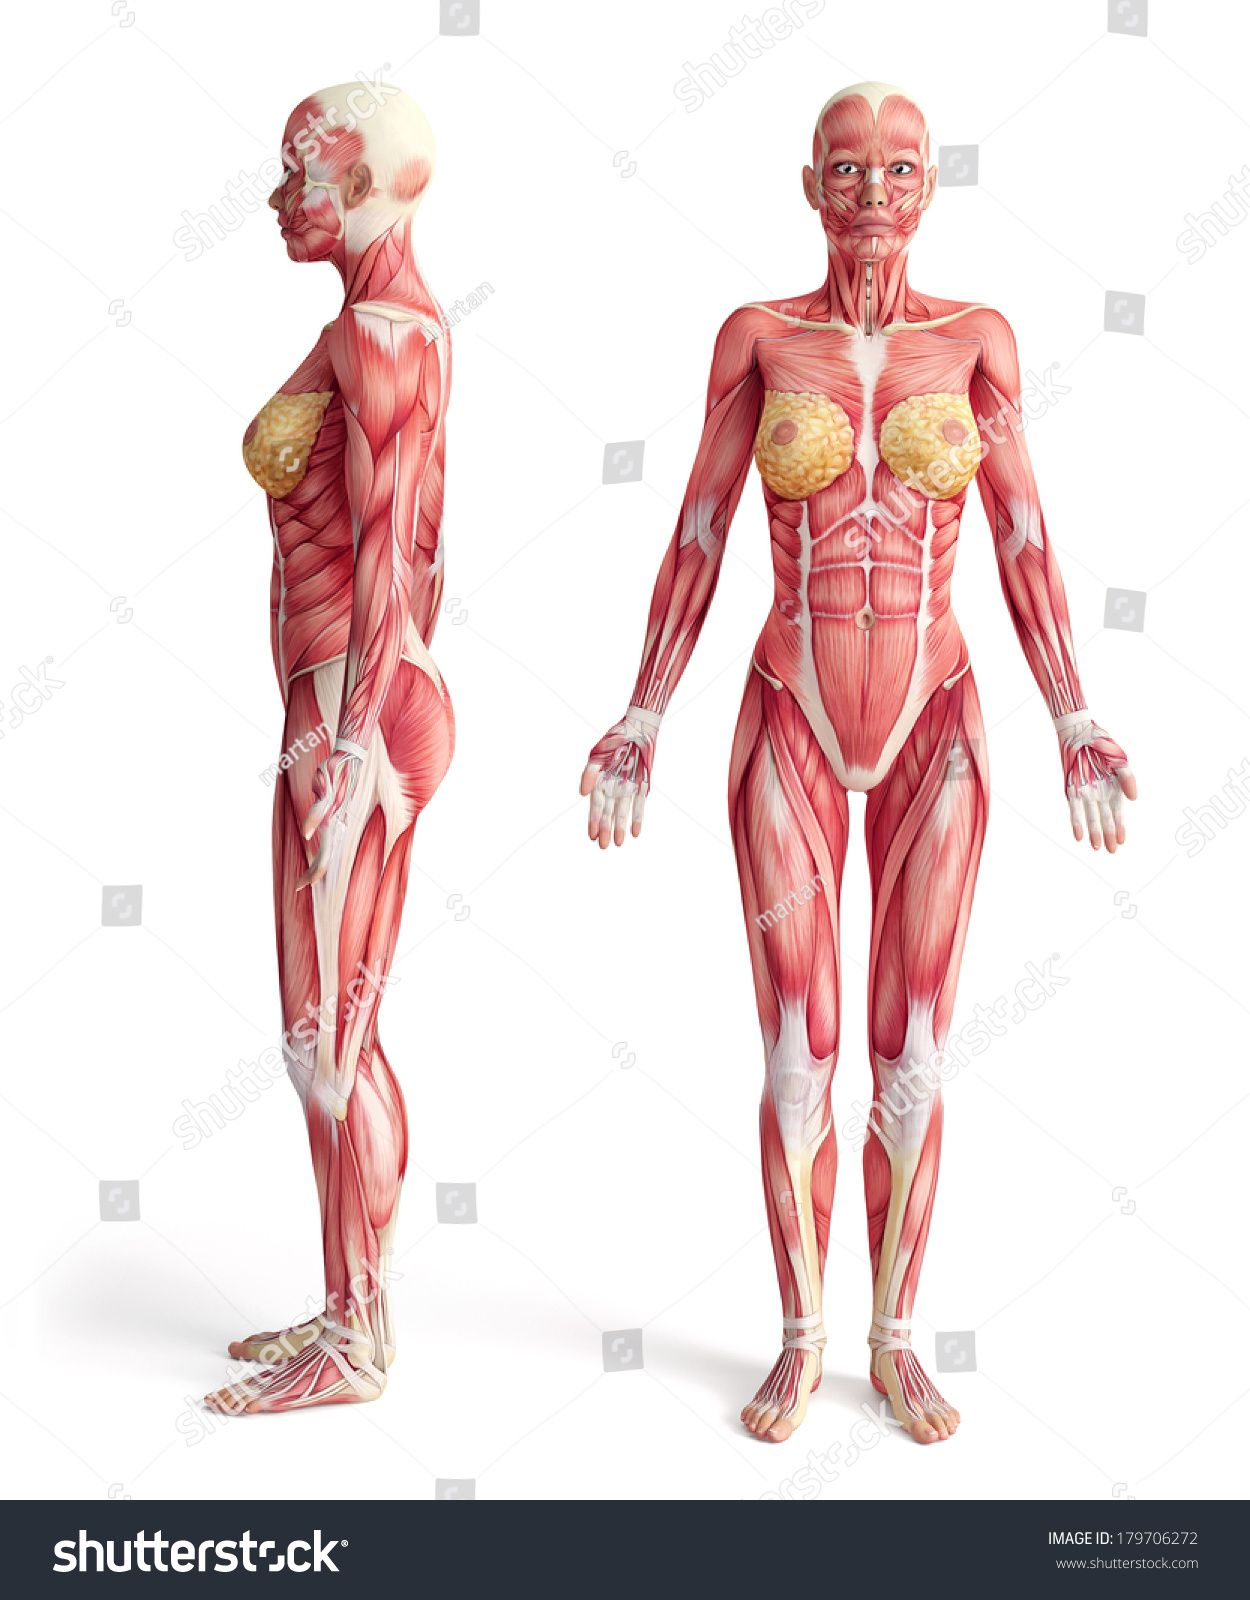 stock-photo-anatomy-of-muscular-system-front-and-side-view-female ...